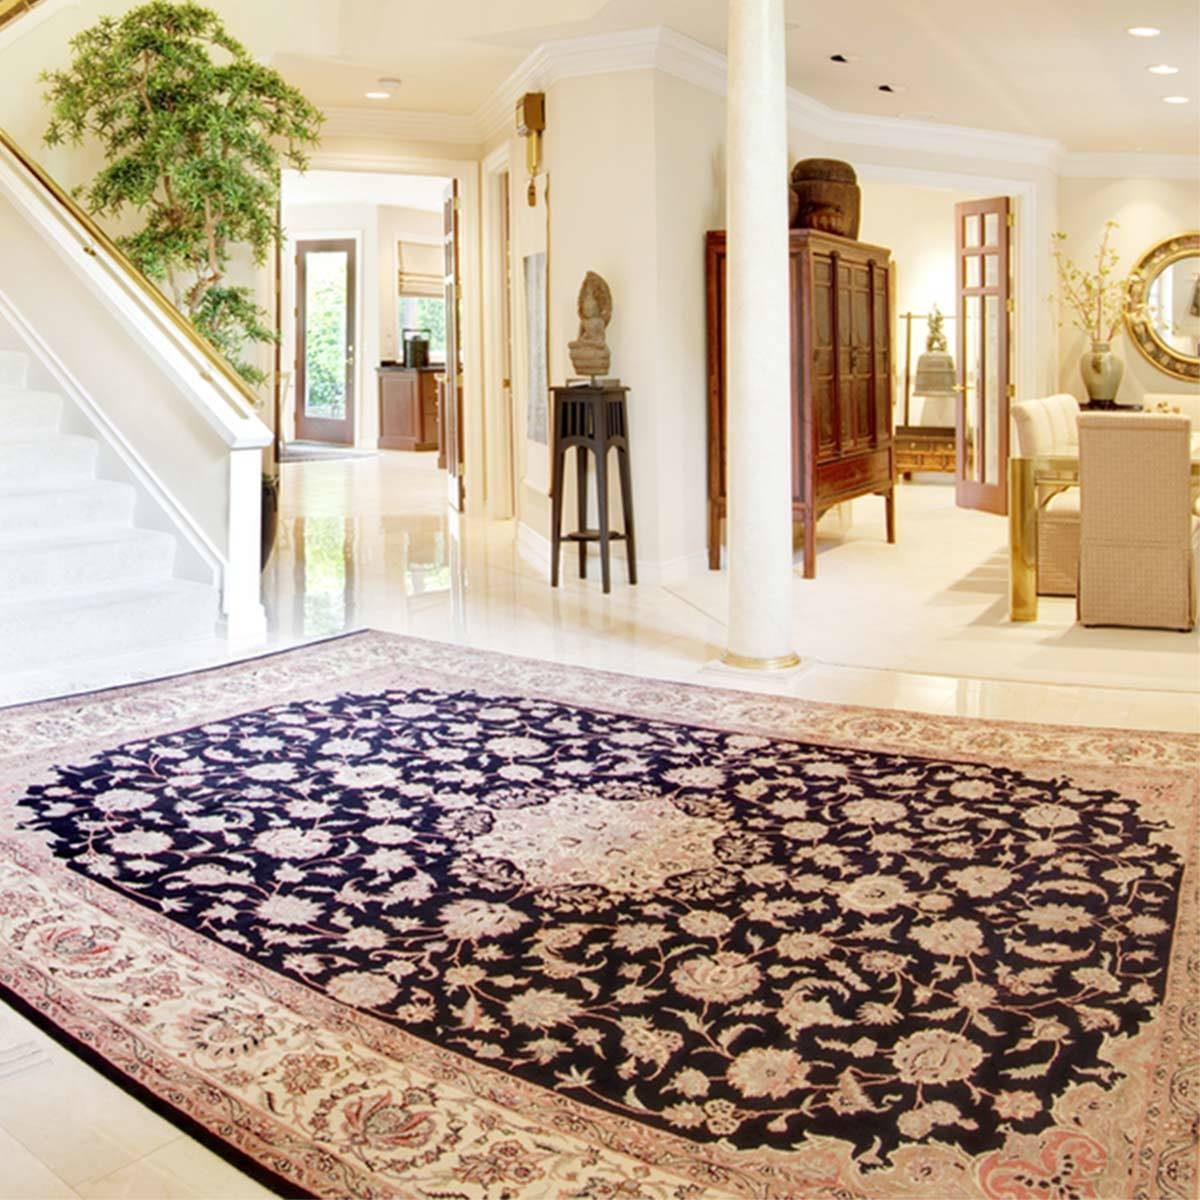 Choose a Stylish Rug